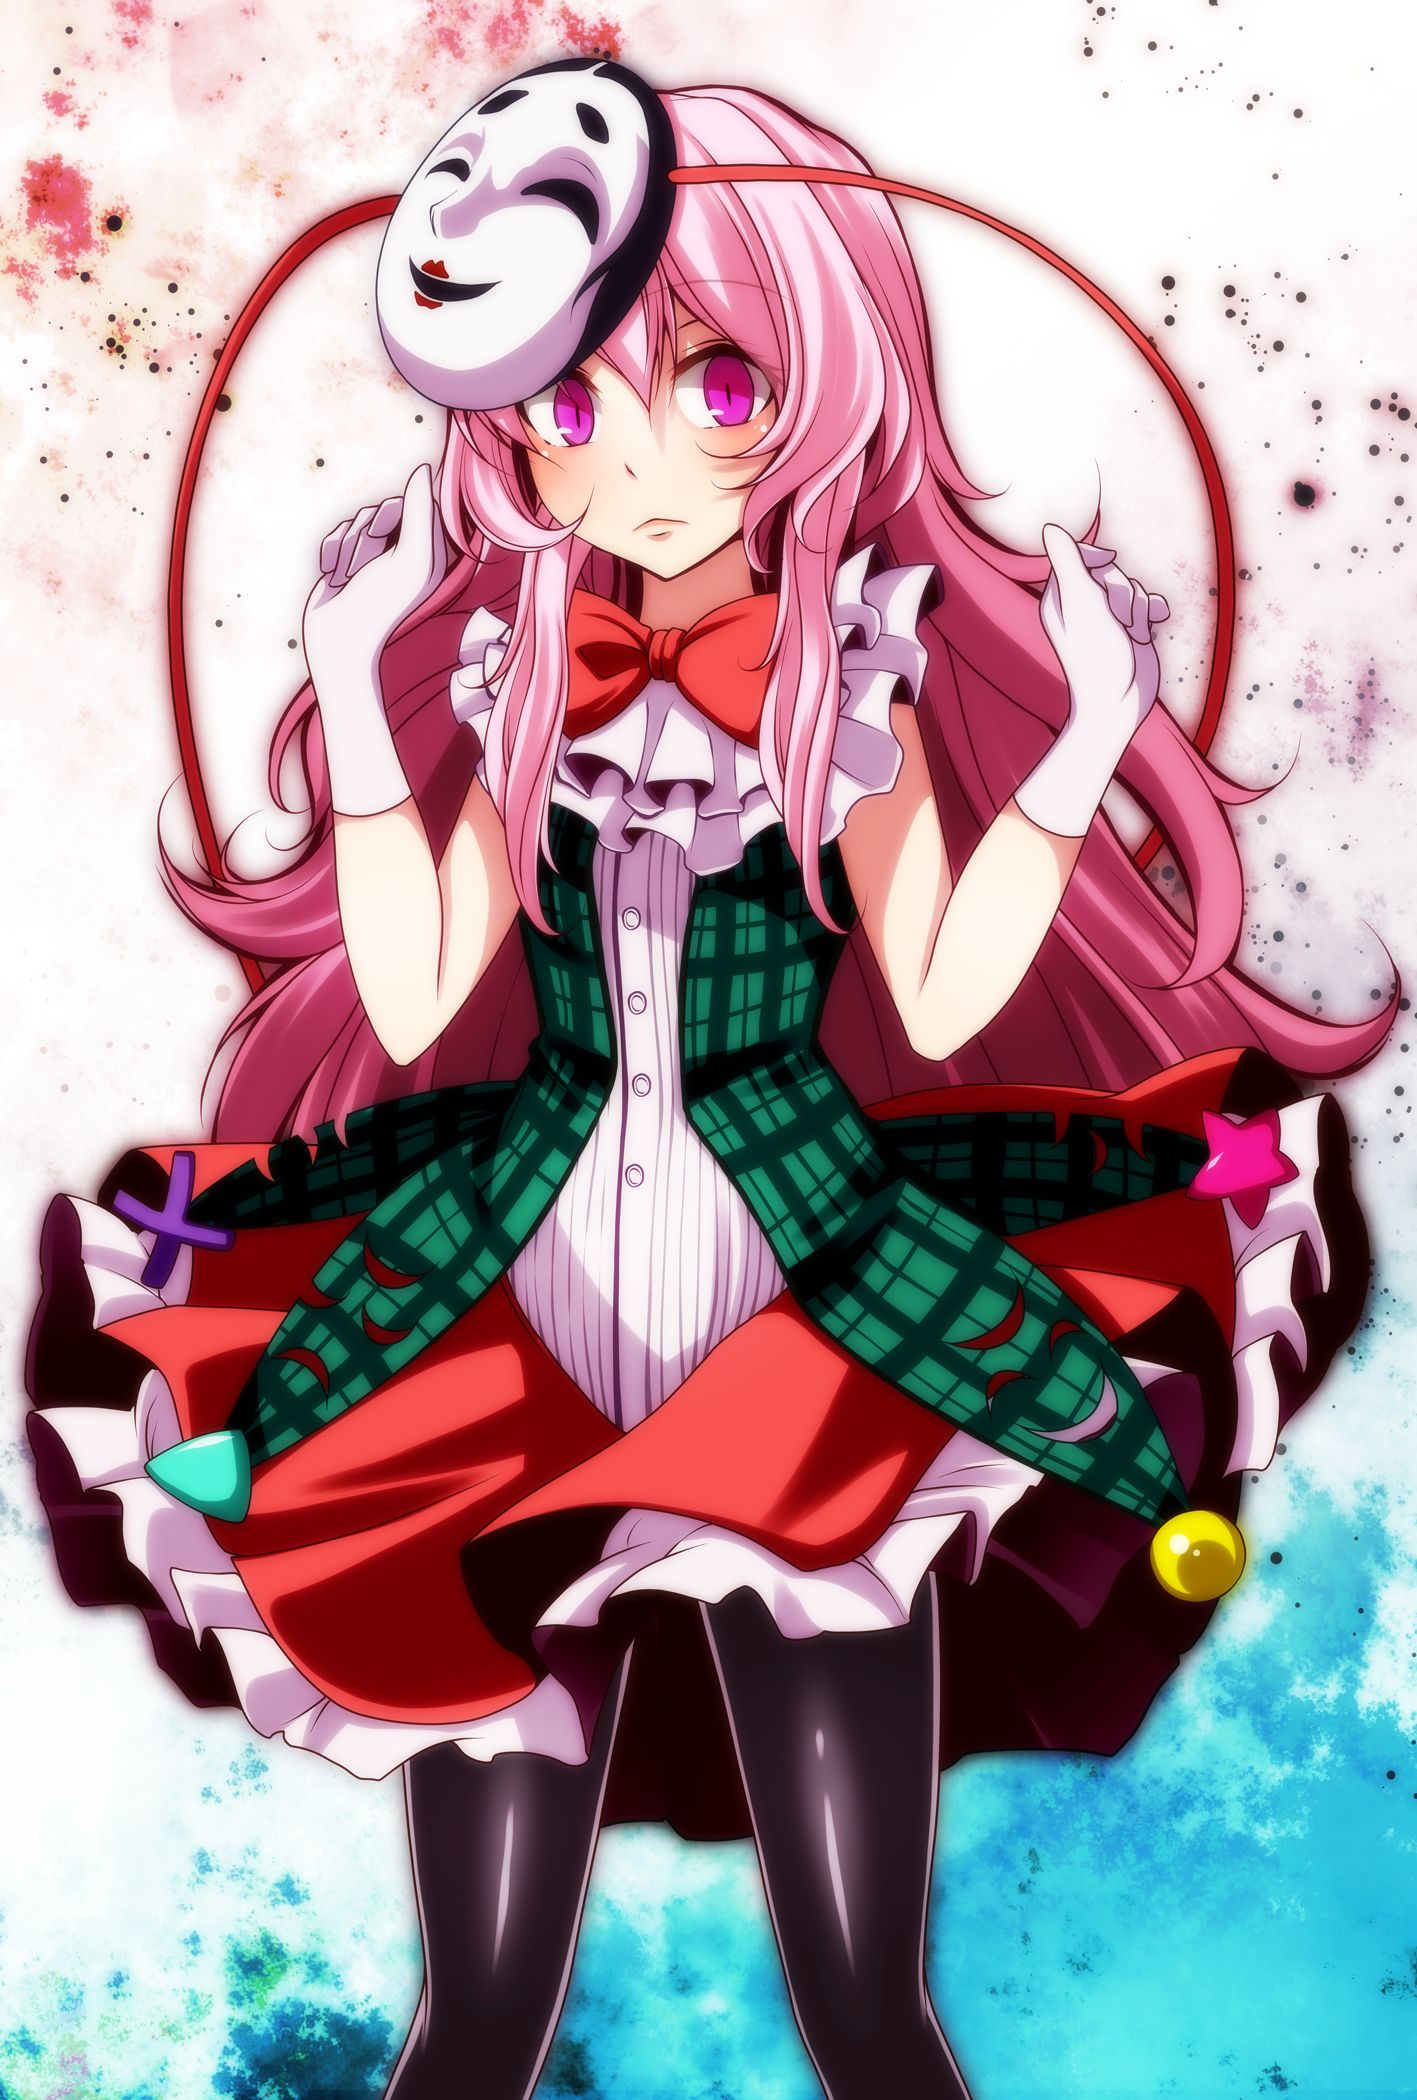 Anime image by Jeanelly Castro on Touhou Kokoro, Anime